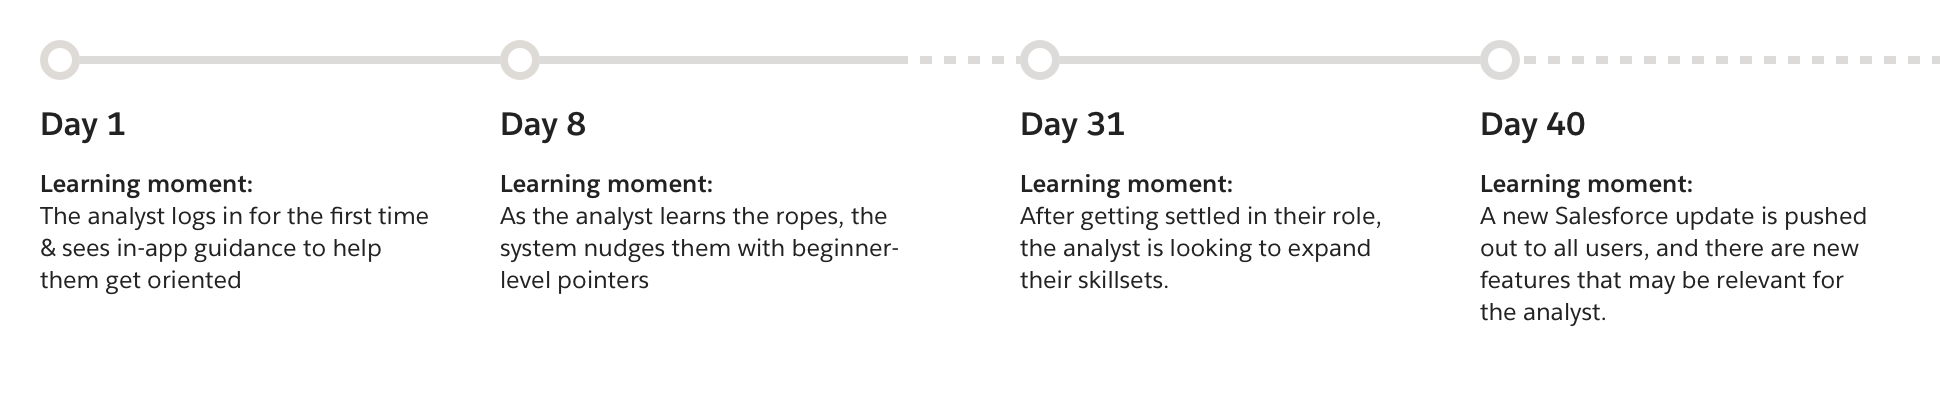 Sample timeline with key learning moments